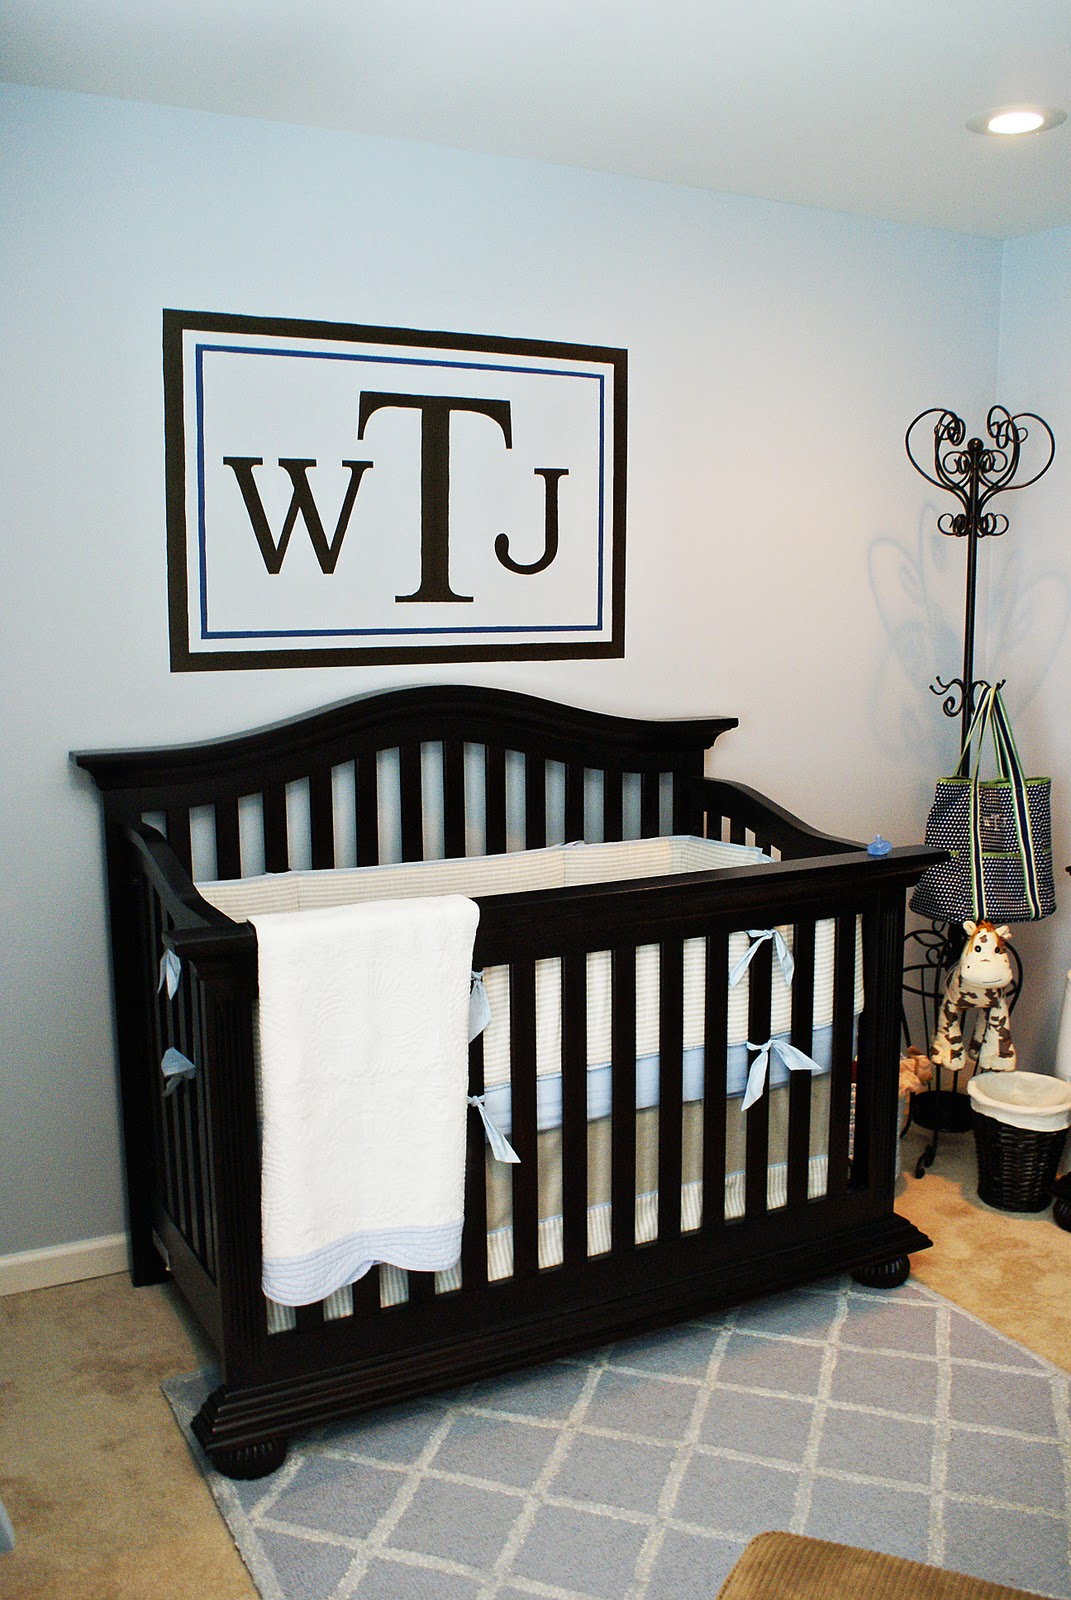 Defining designs sweet baby boy nursery for Above the crib decoration ideas